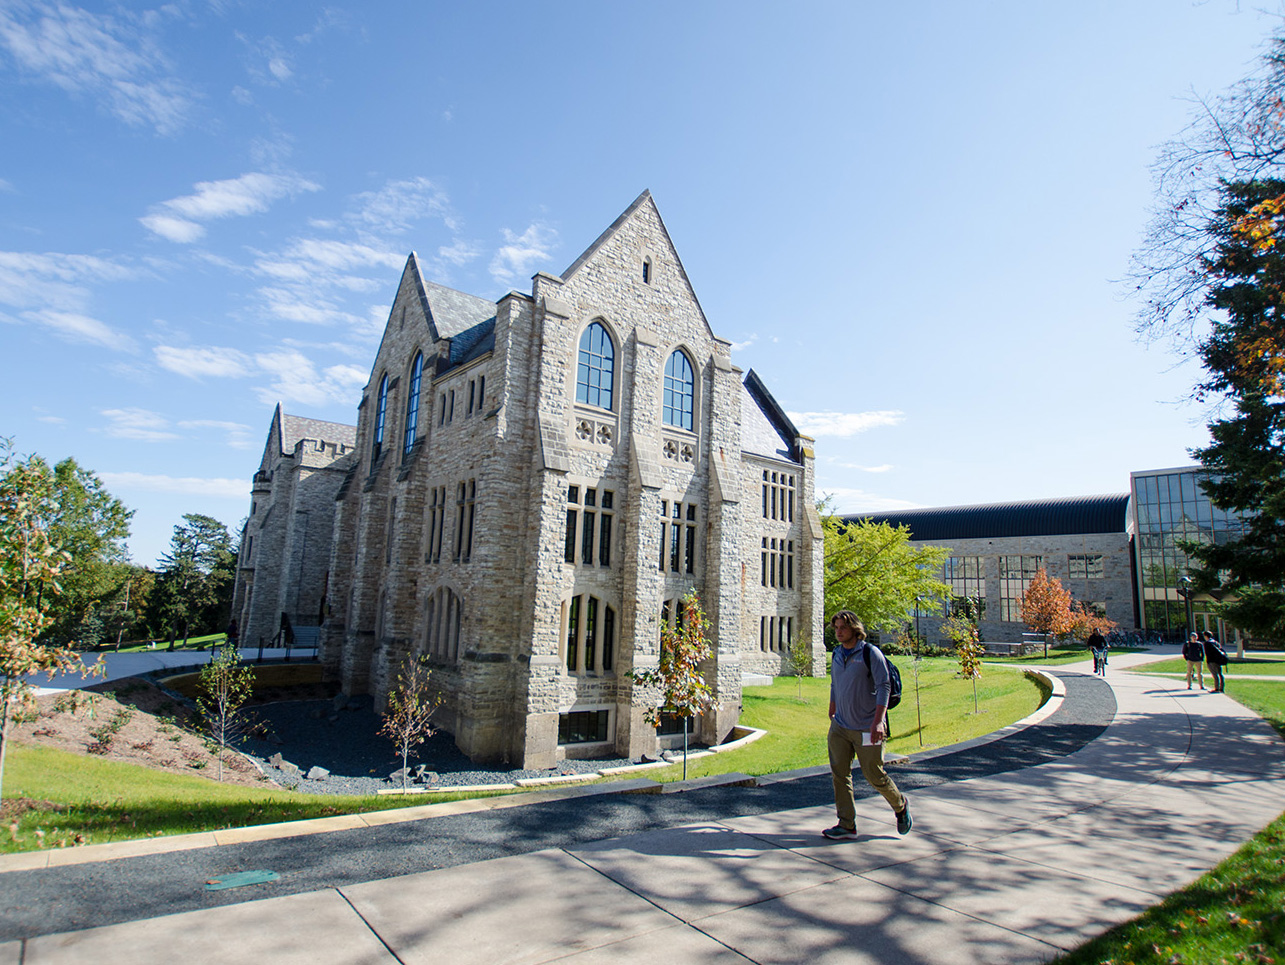 saint olaf 7,551 followers, 47 following, 1,188 posts - see instagram photos and videos from st olaf college (@stolafcollege.